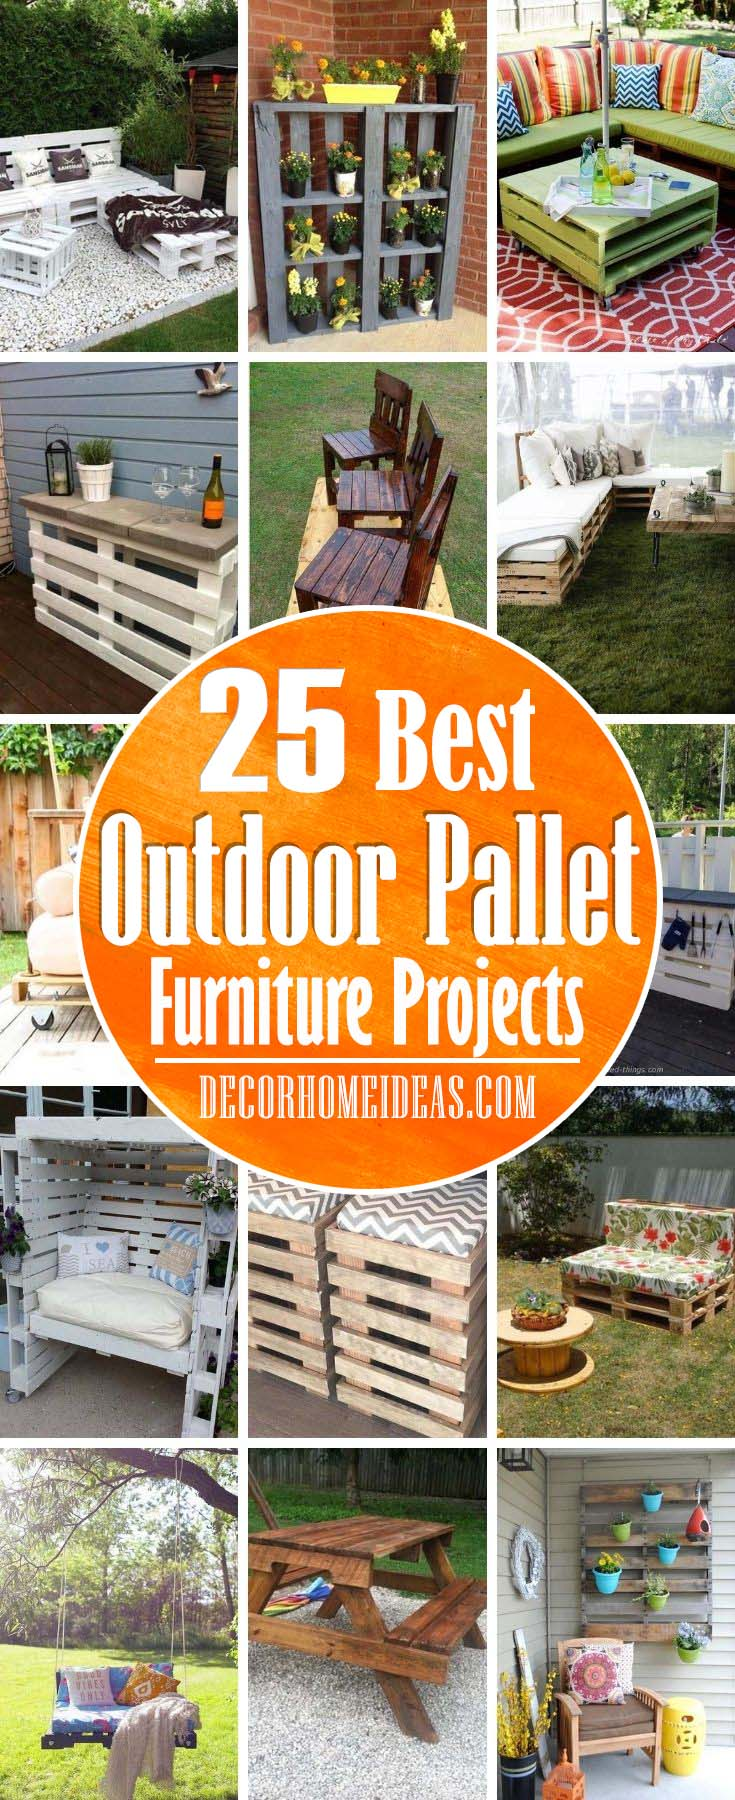 Best Outdoor Pallet Furniture Projects. If you are looking for some inexpensive garden furniture ideas, those made out of pallets would be nice to consider. #decorhomeideas